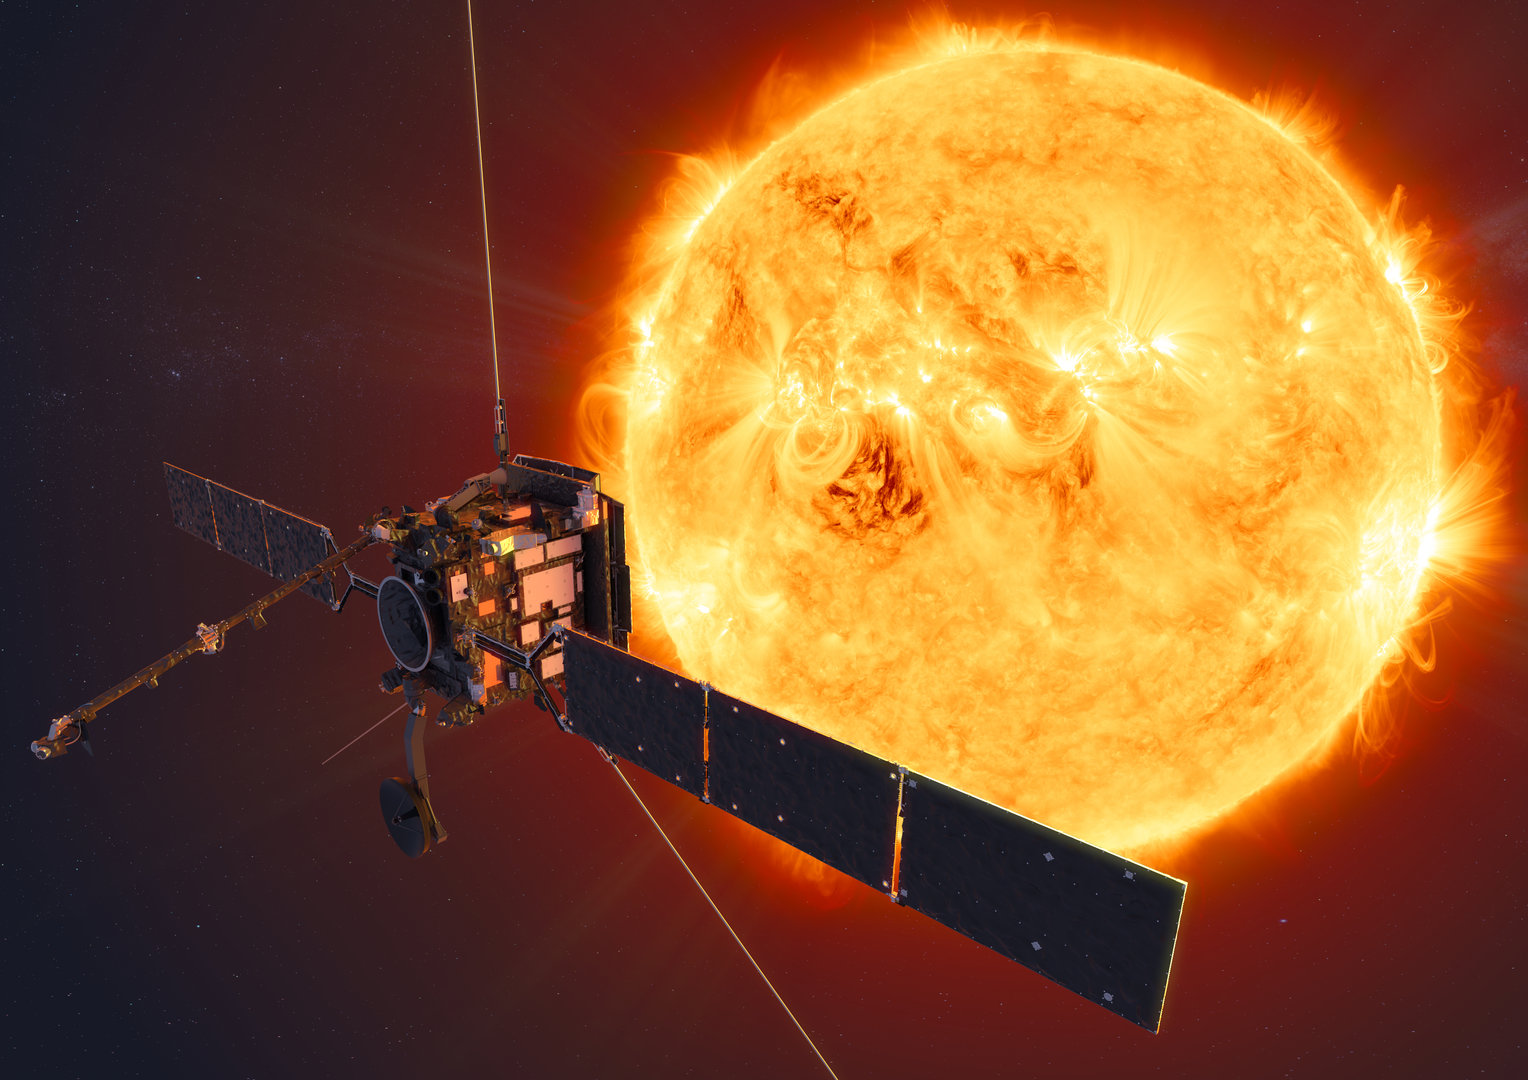 Solar Orbiter mission shares closest ever images of the sun